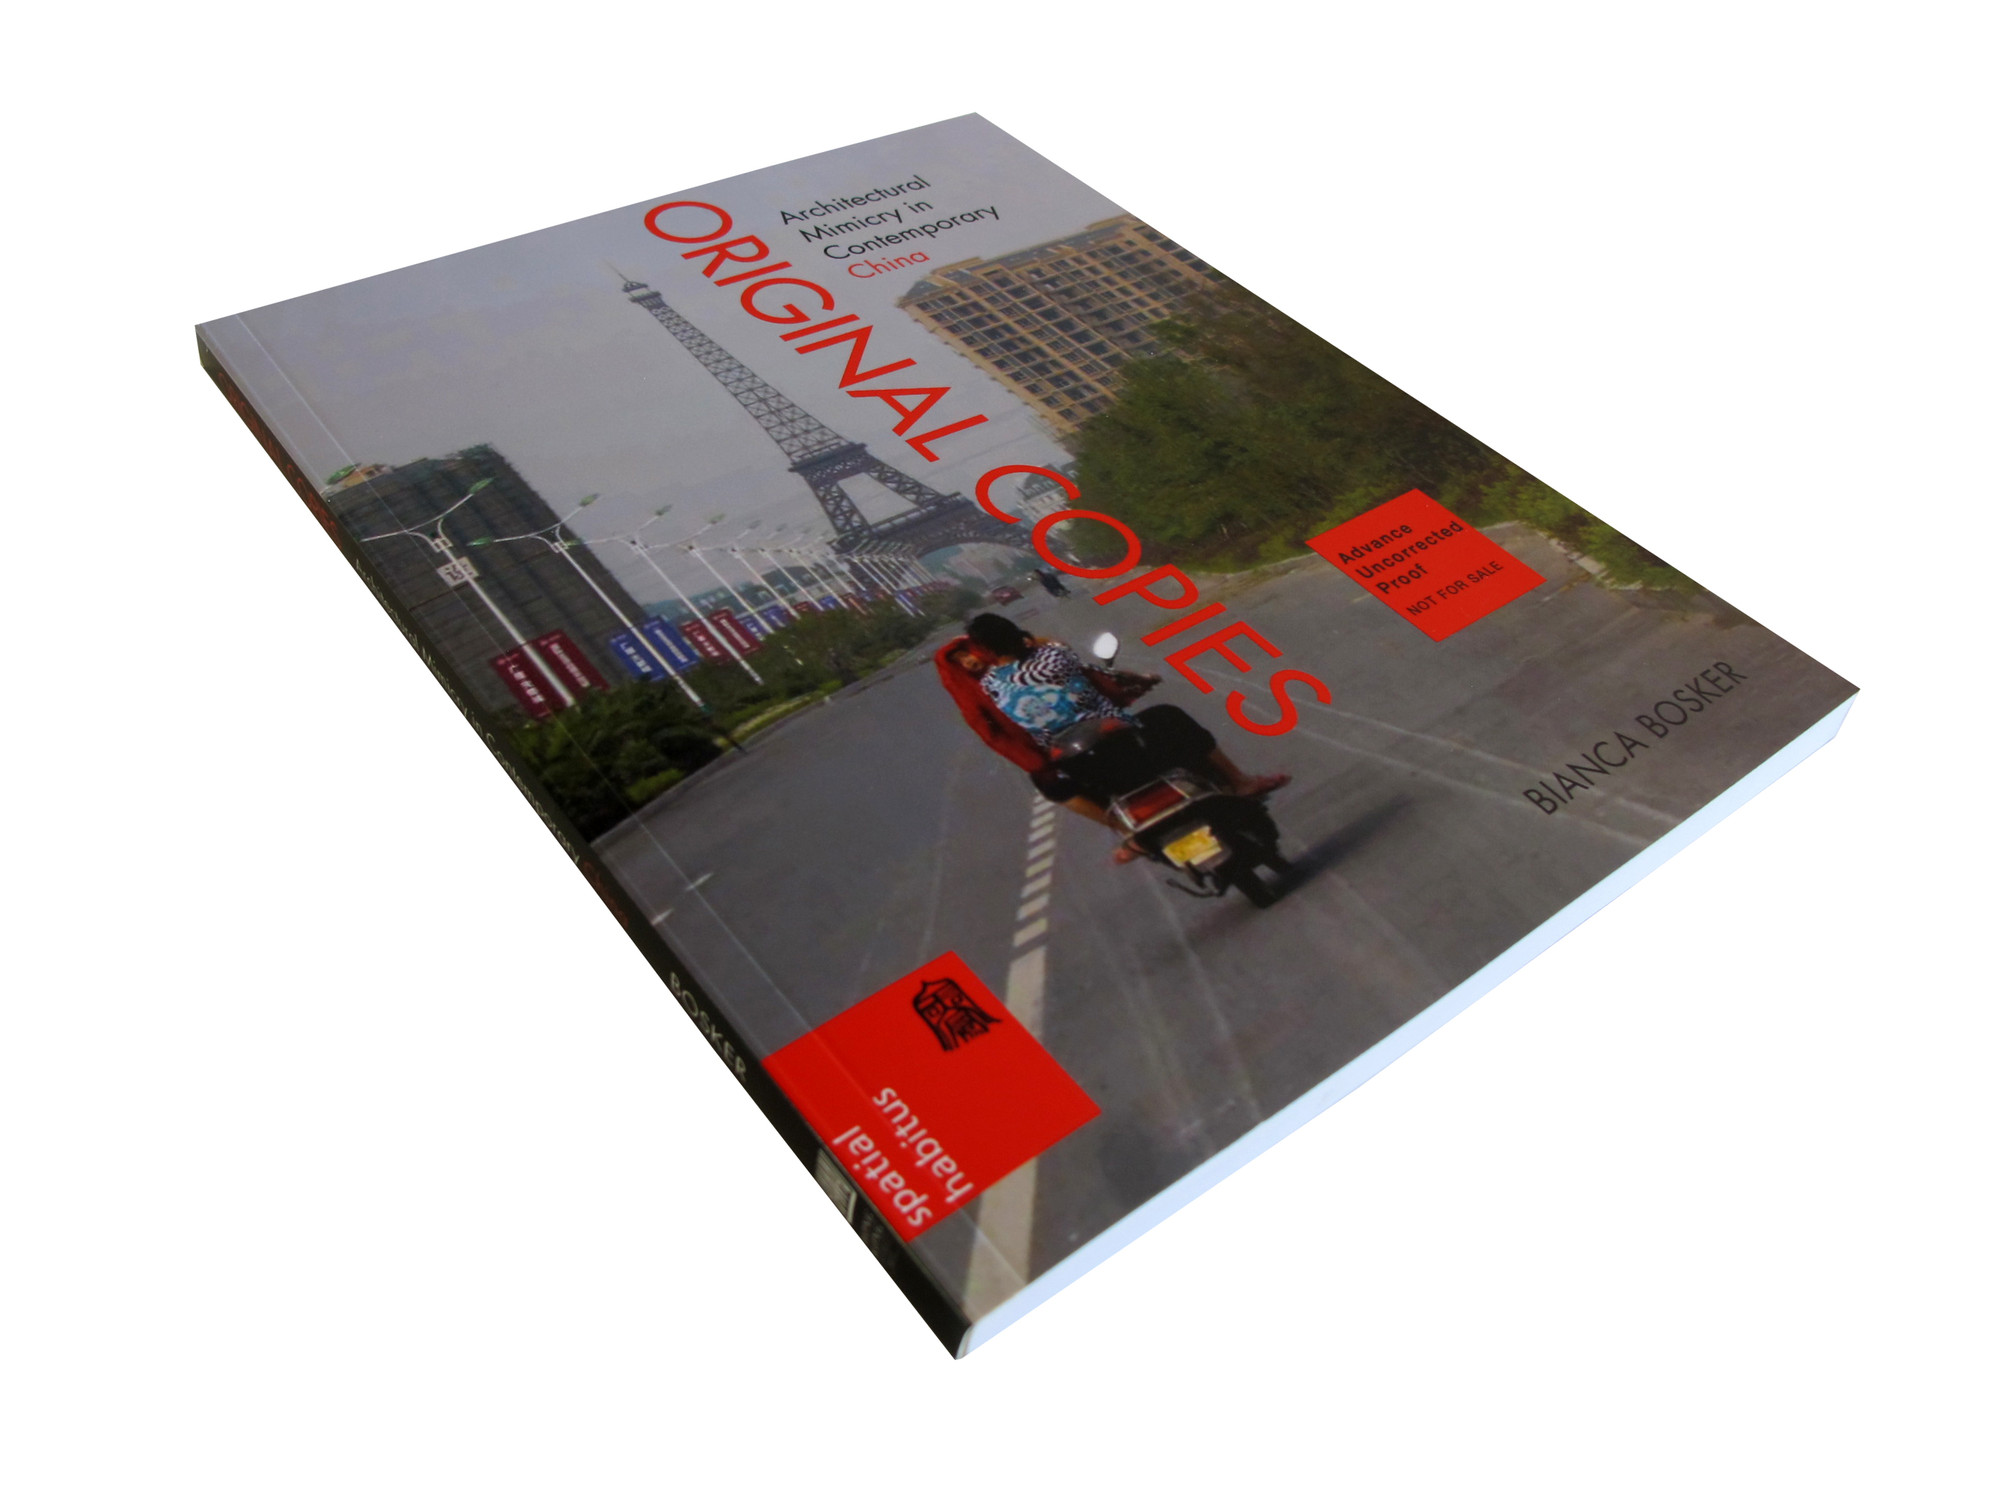 Original Copies: Architectural Mimicry in Contemporary China / Bianca Bosker, Courtesy of University of Hawaii Press